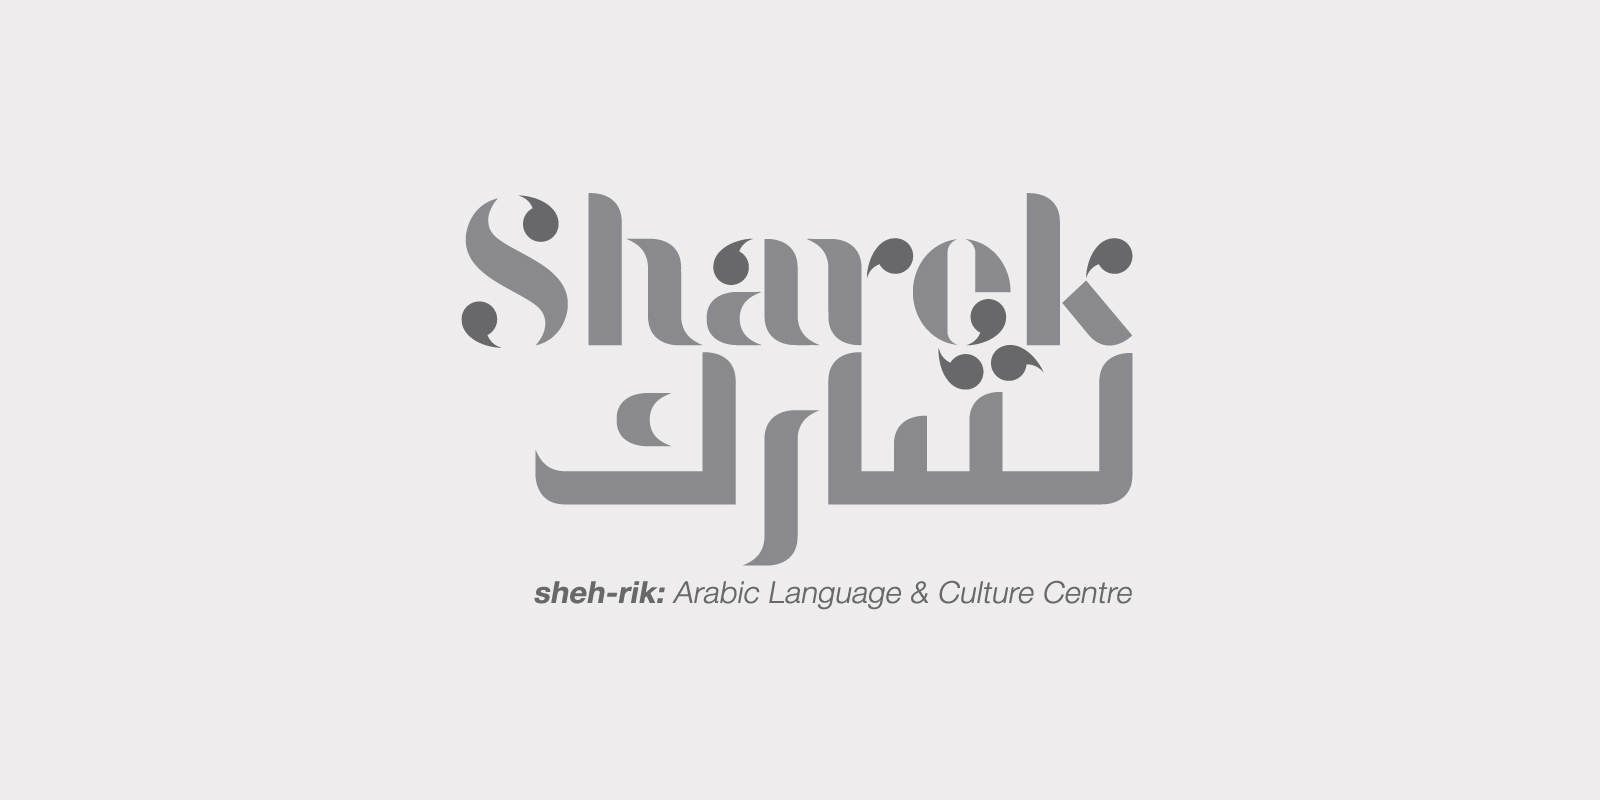 BTL_Website_Logos_Sharek_Grey.jpg